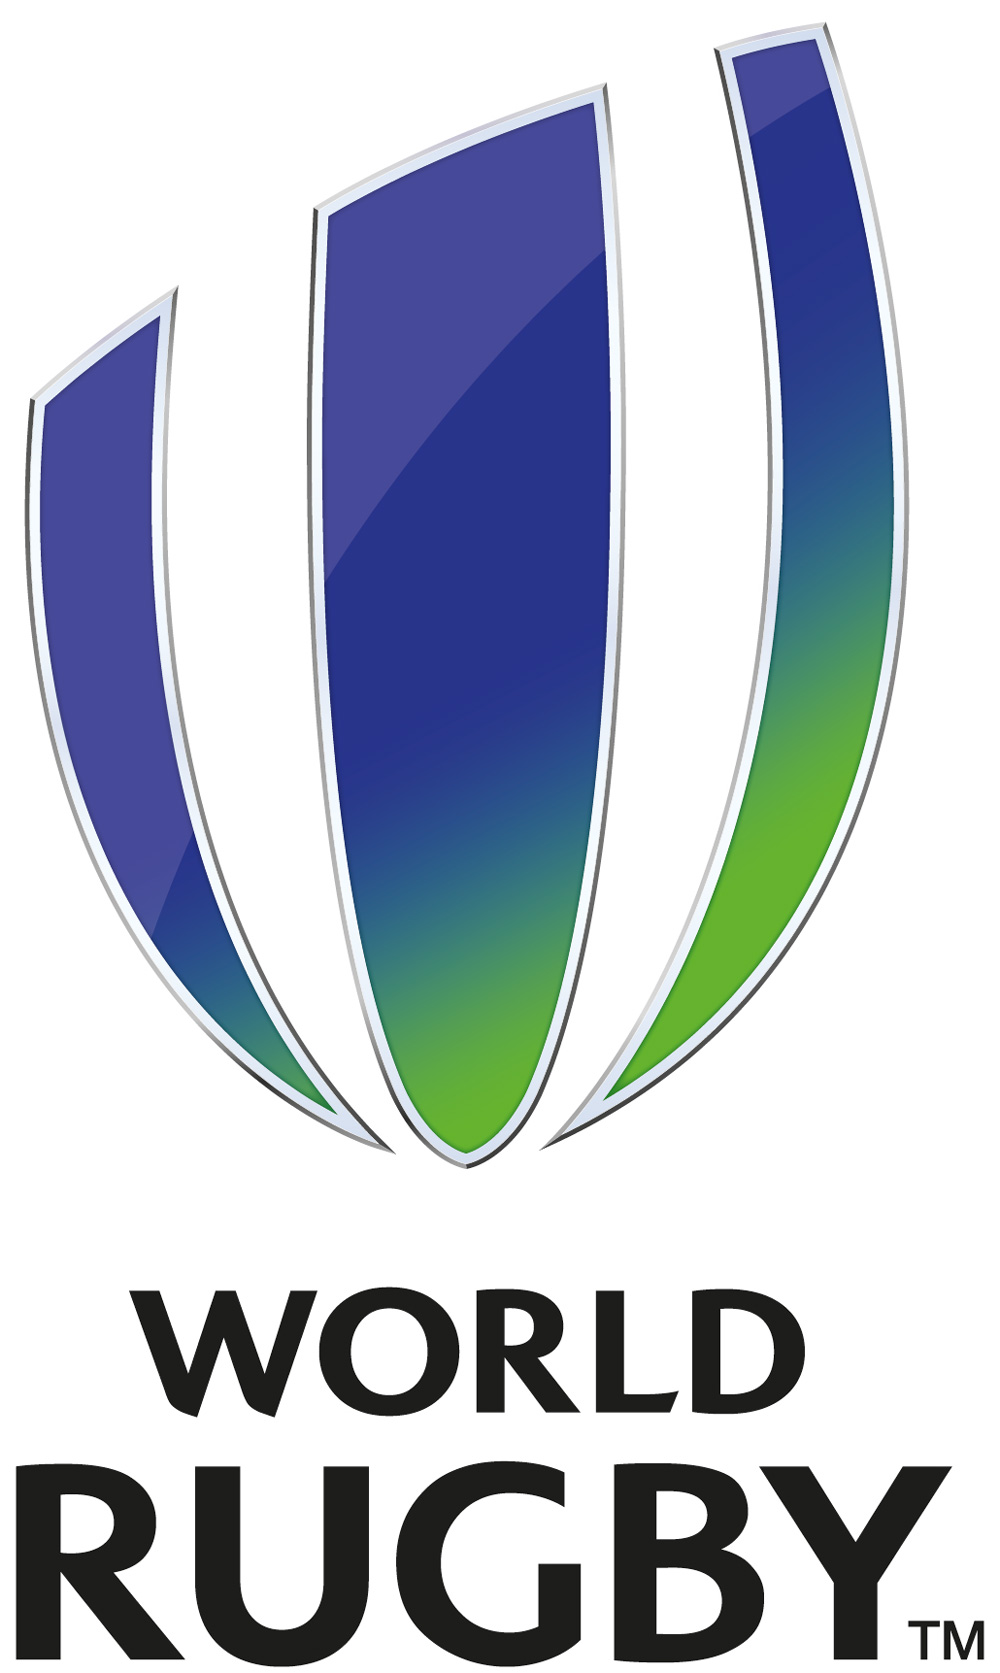 world_rugby_logo_detail.jpg